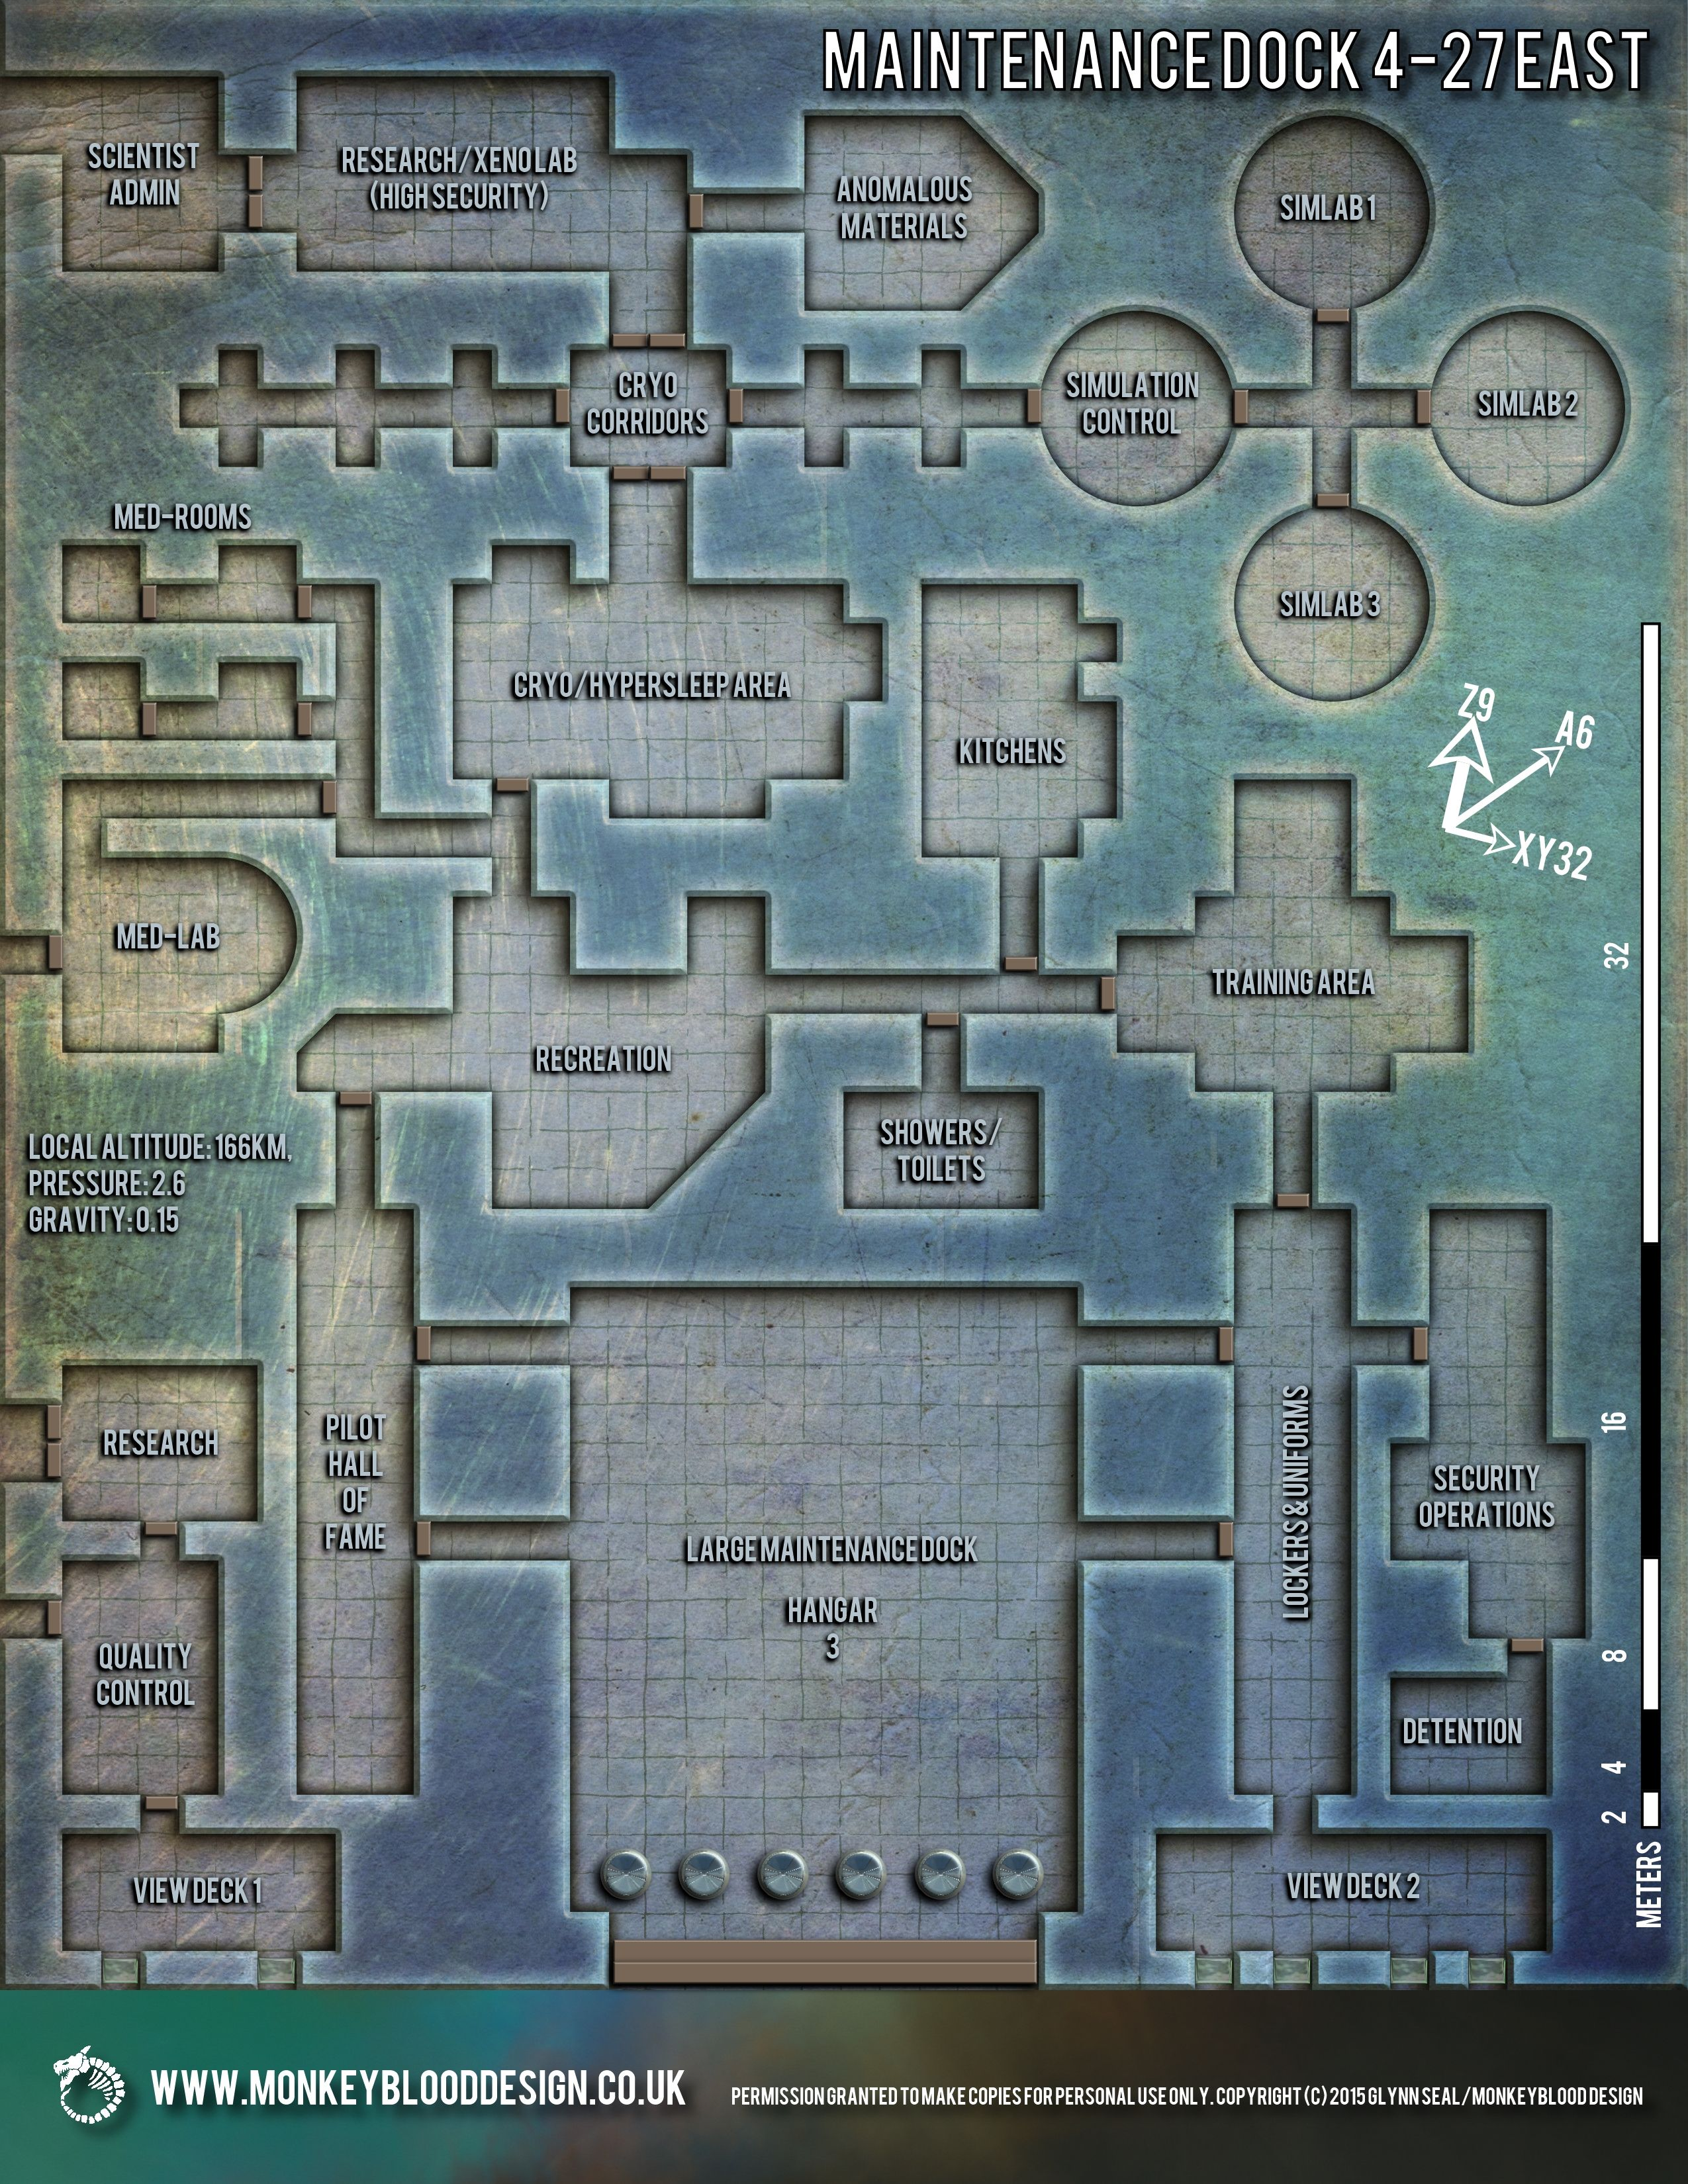 Sci Fi Layouts : Map monday maintenance dock east osr today sci